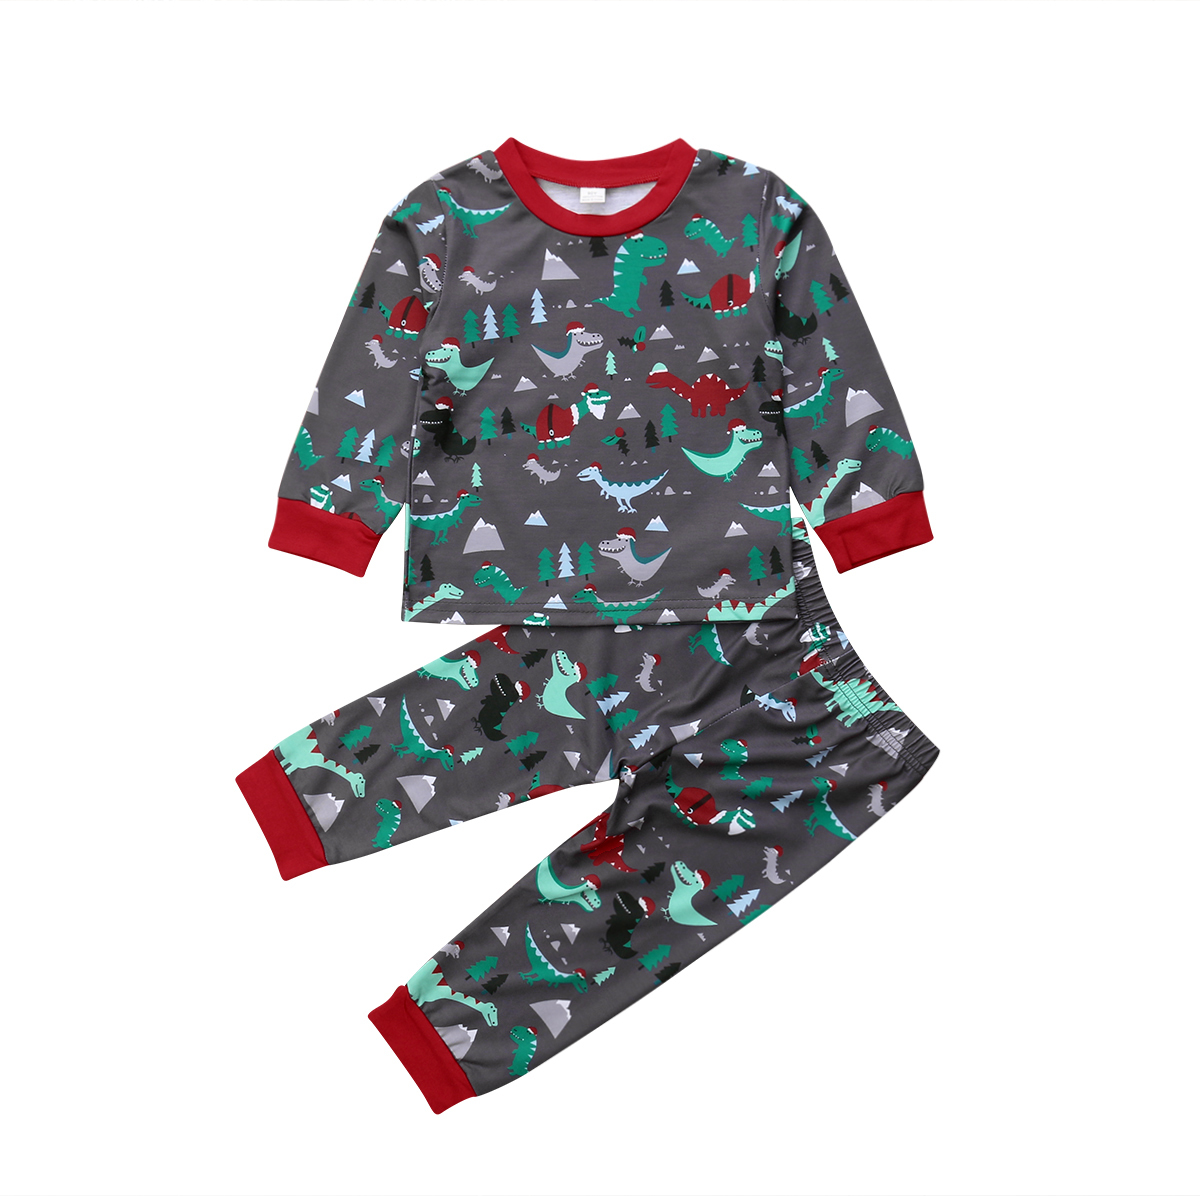 Kids Baby Girl Boy Christmas Dinosaur Tops T shirt Pants Leggings Outfit Clothes   Pajamas     Set